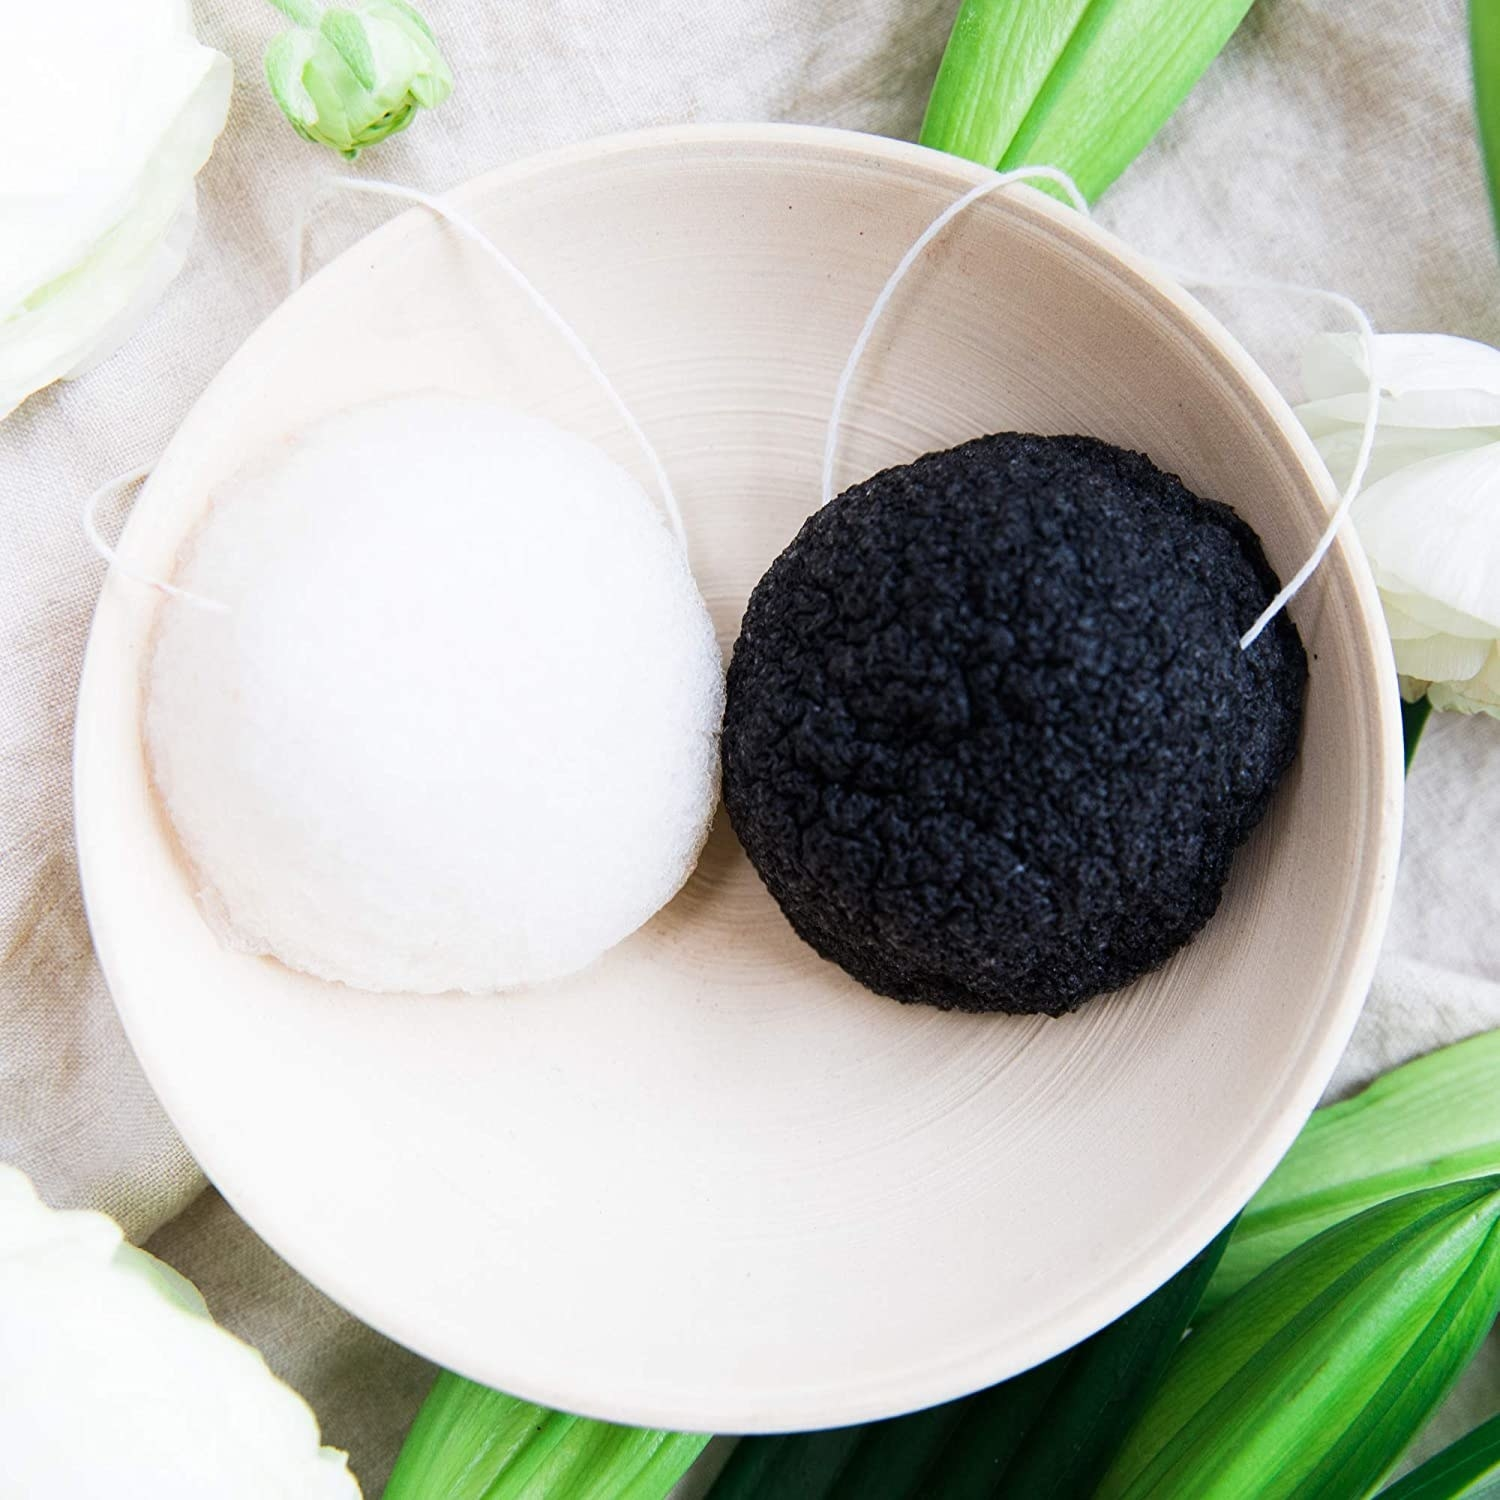 Two konjac sponges in a ceramic bowl